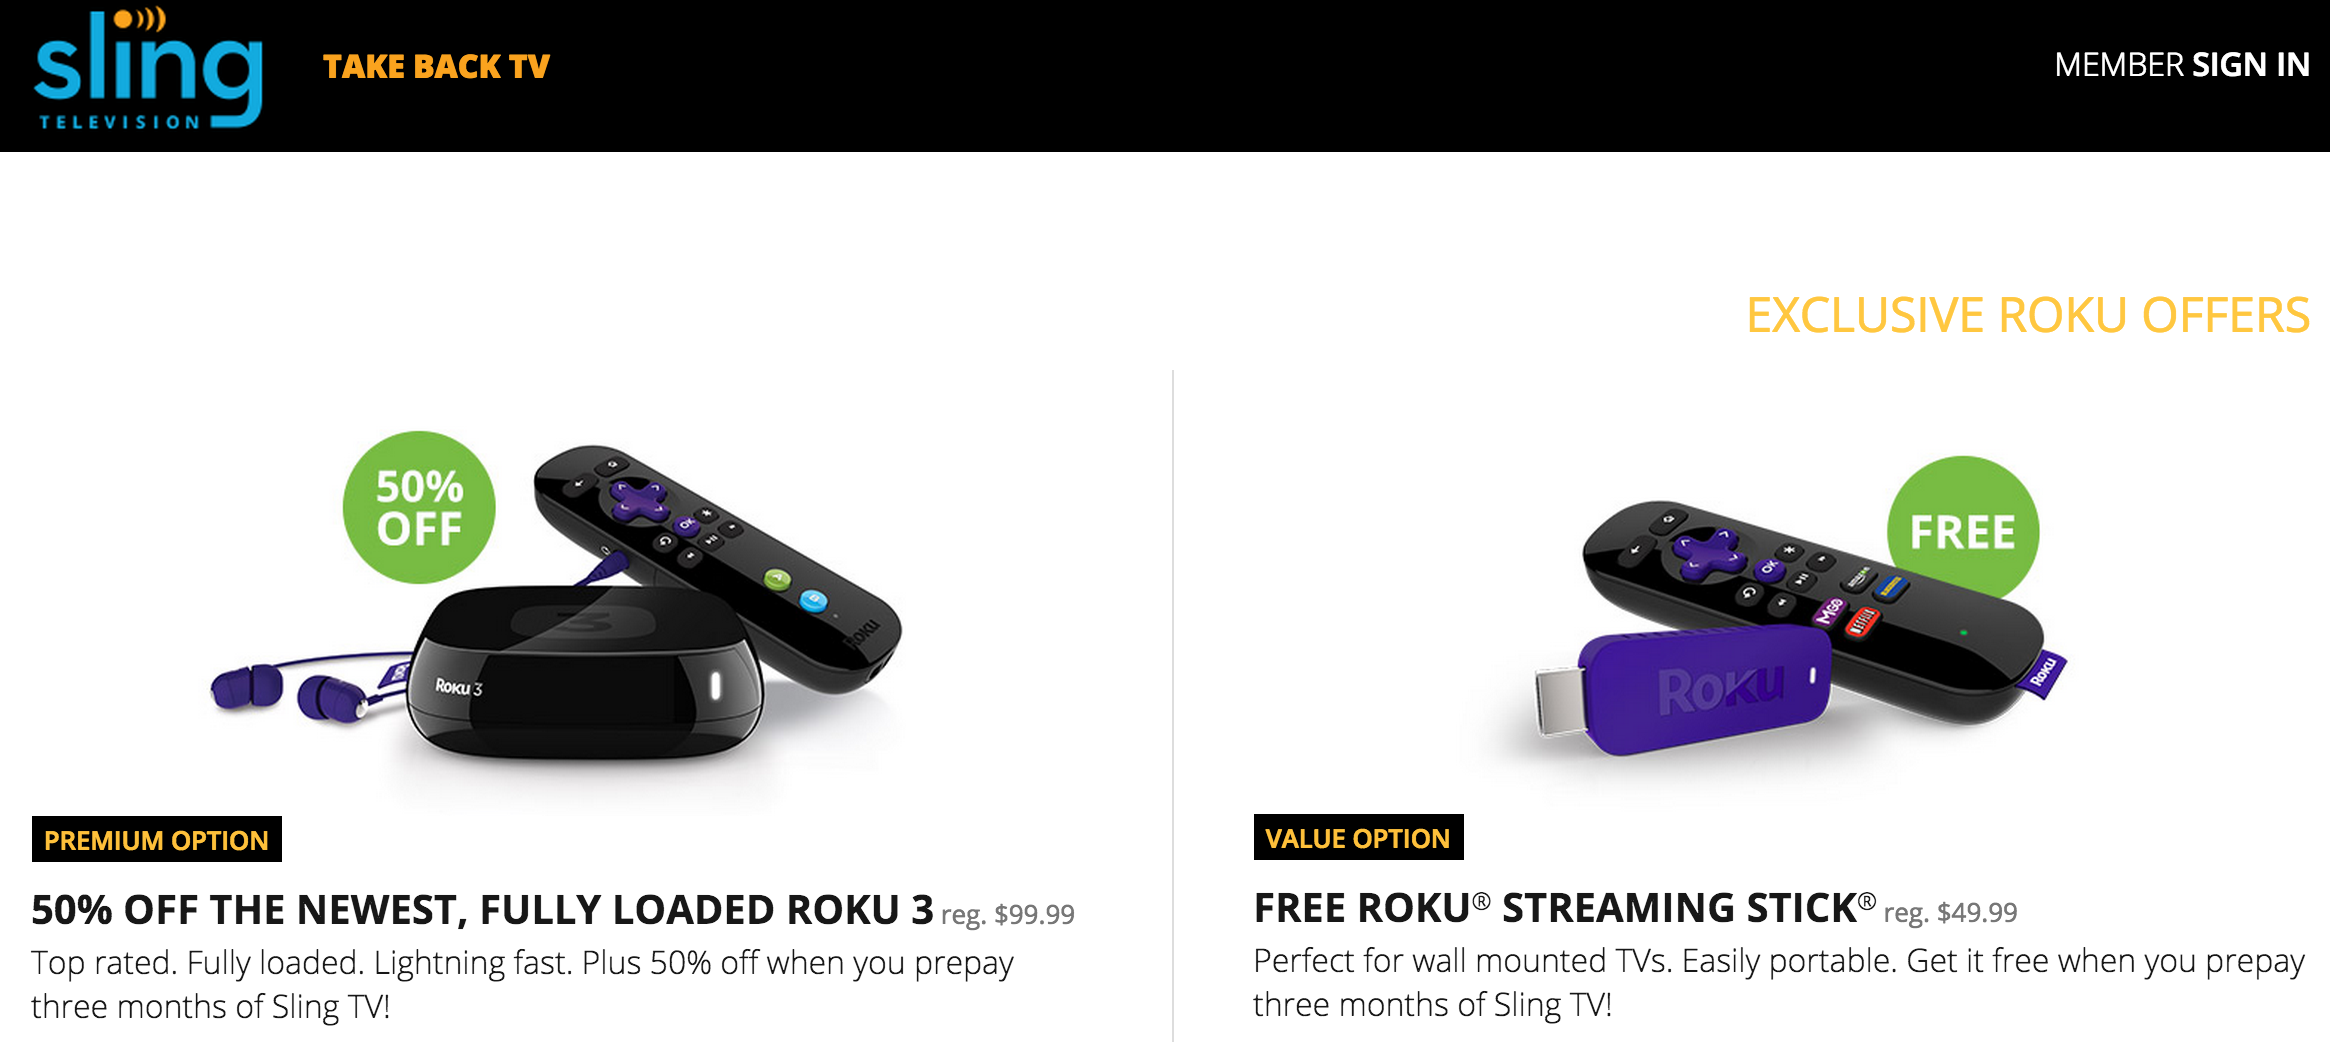 Sling is offering discounts on Ruko and Amazon streaming devices for people willing to prepay for three months of service.